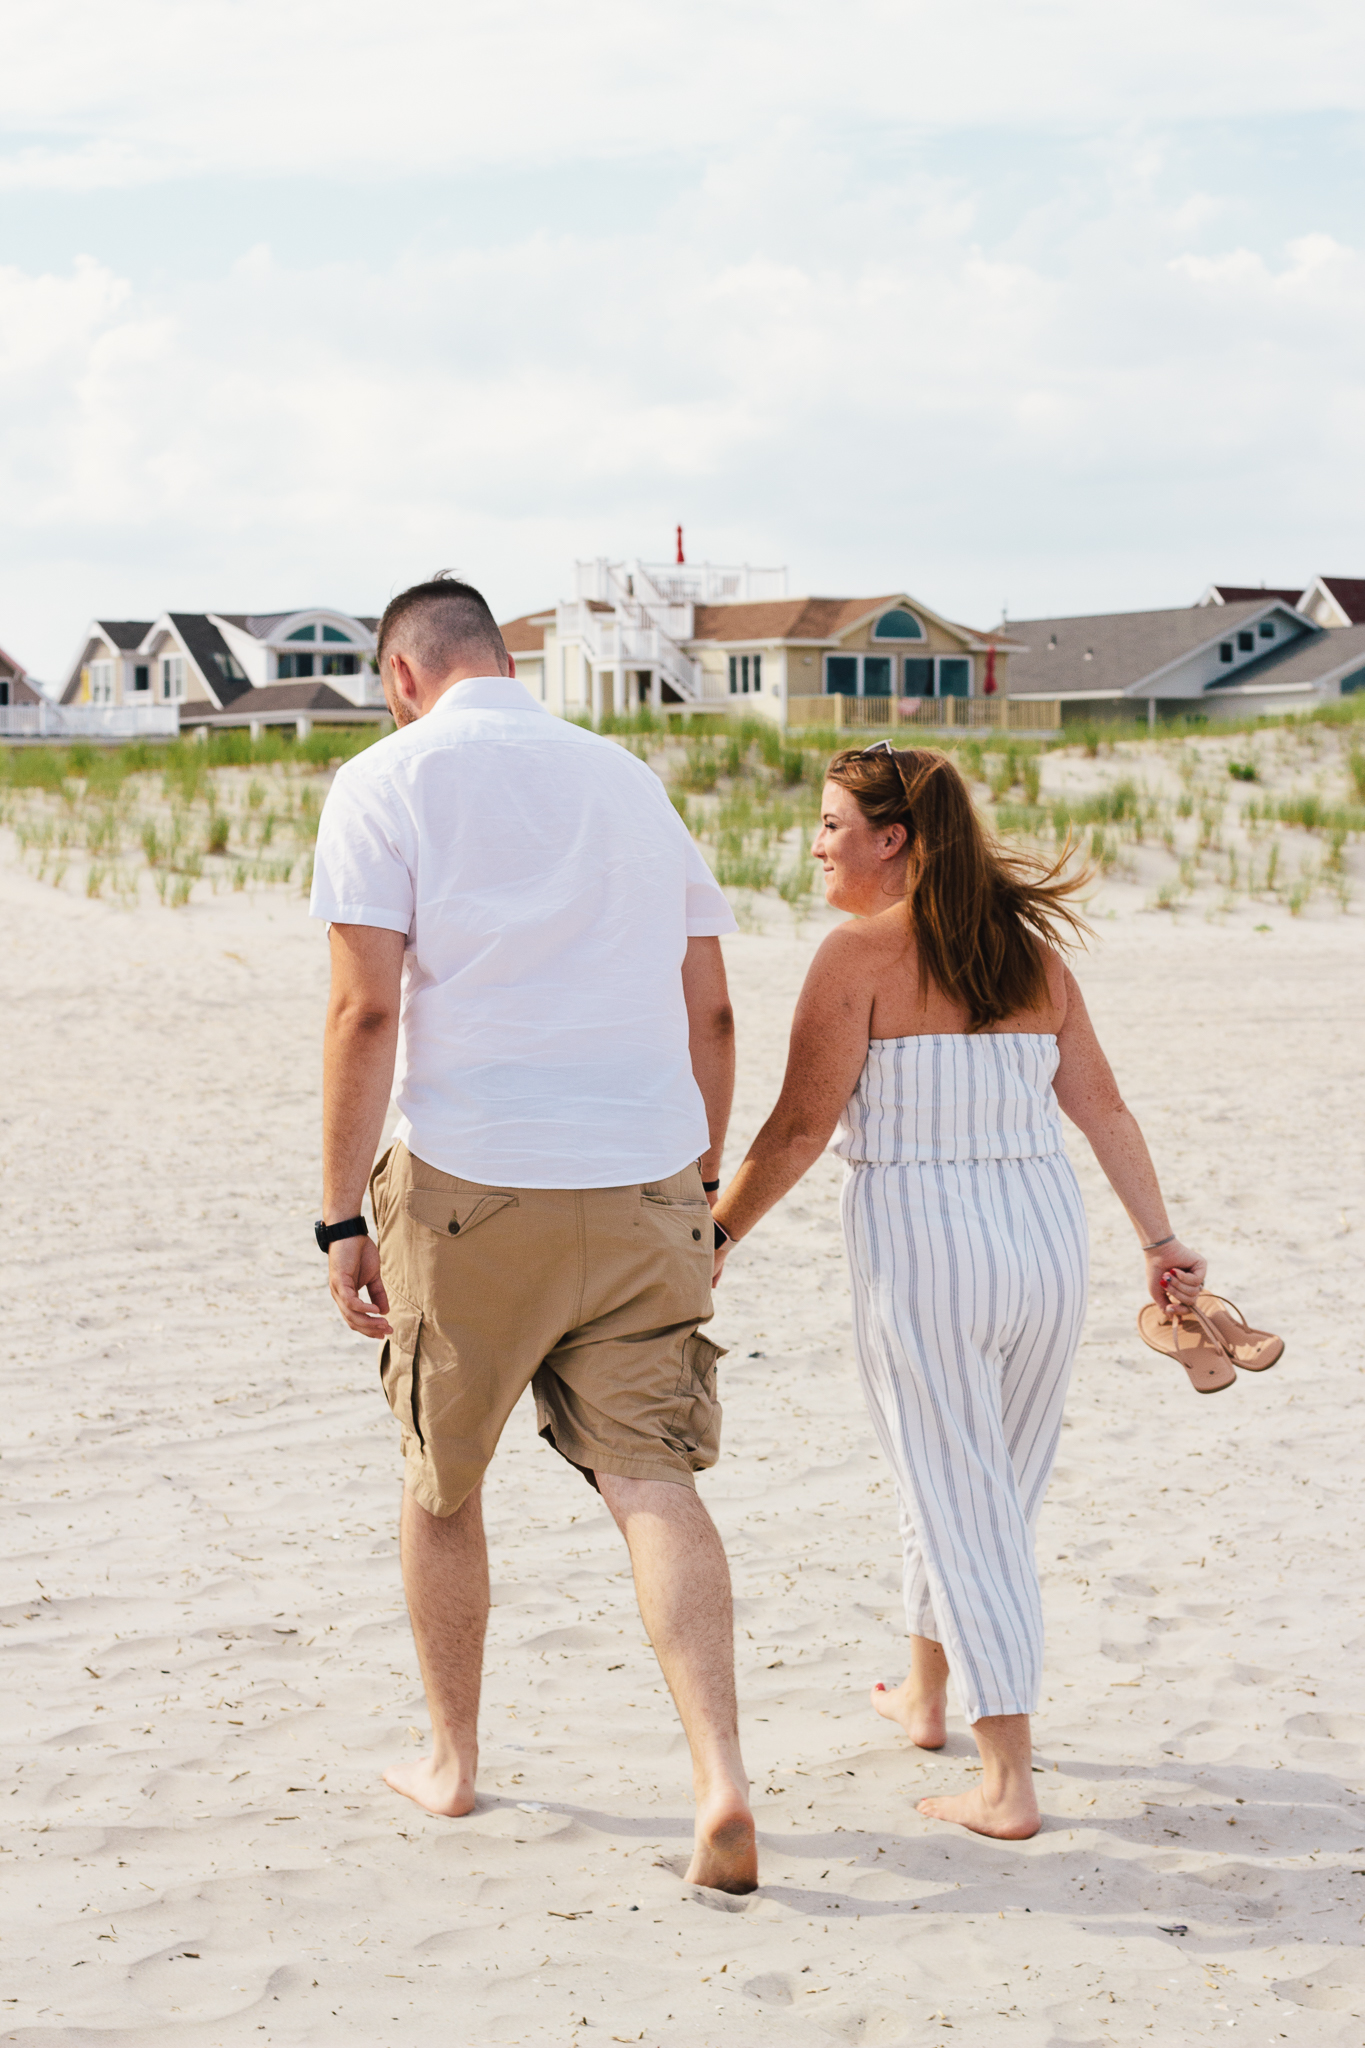 jacqui and shawn_ocean city engagement_caitlinelizabethjames-82.jpg